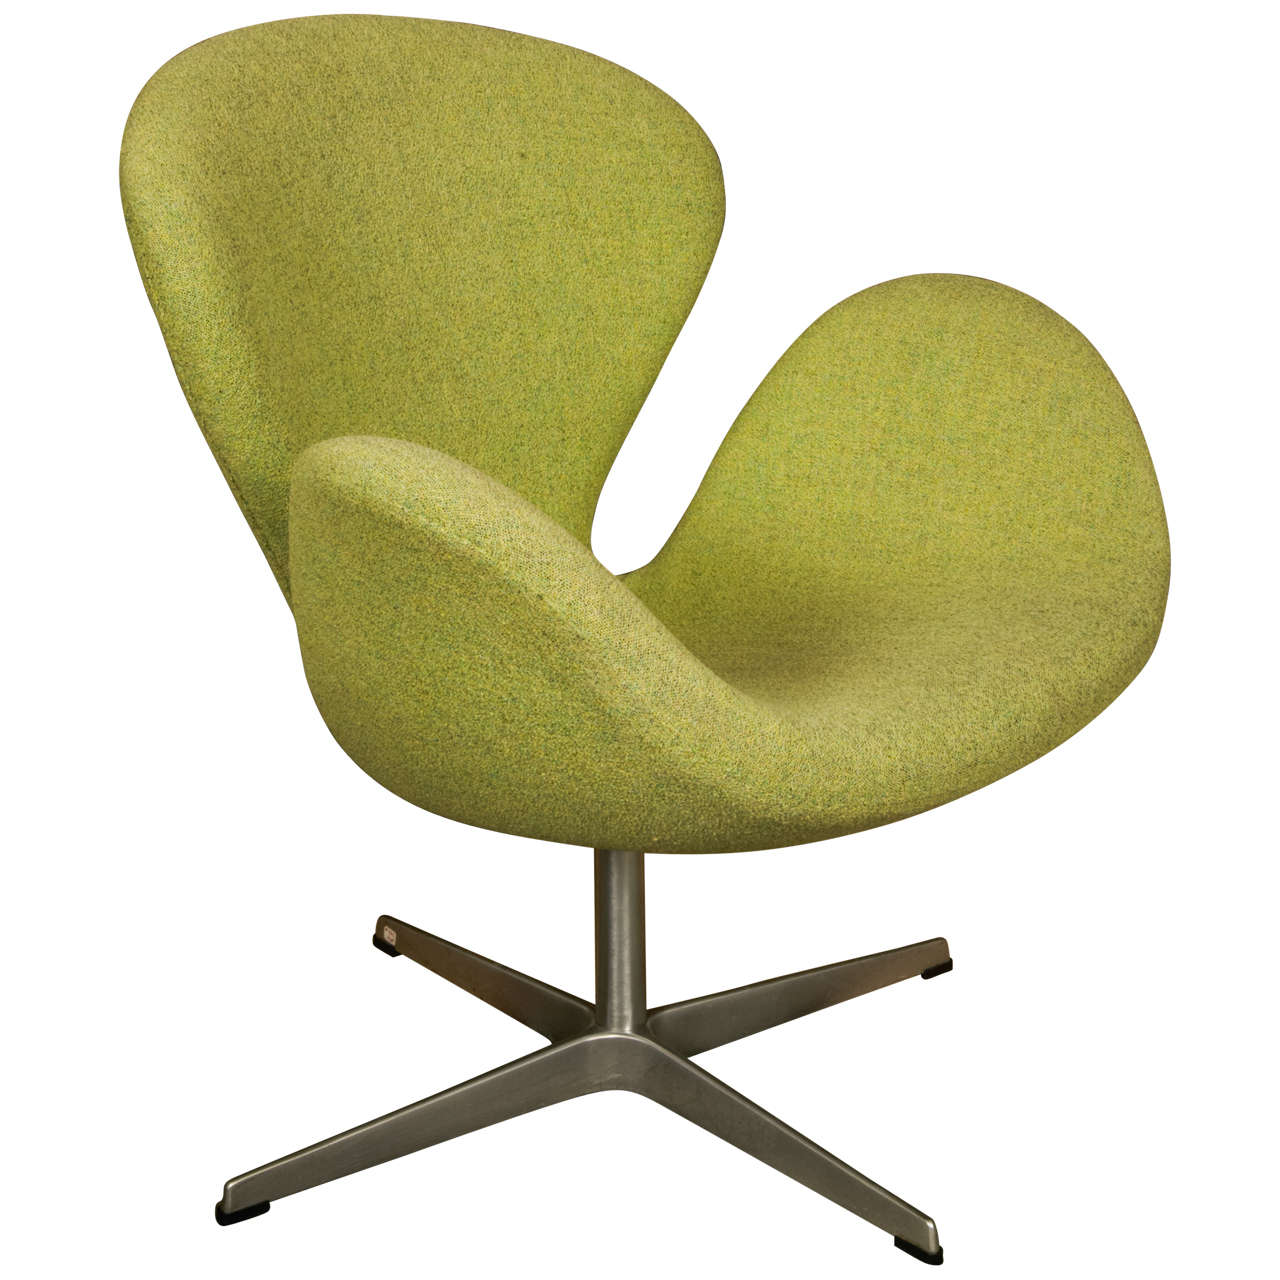 Quot Swan Chair Quot By Arne Jacobsen For Fritz Hansen At 1stdibs